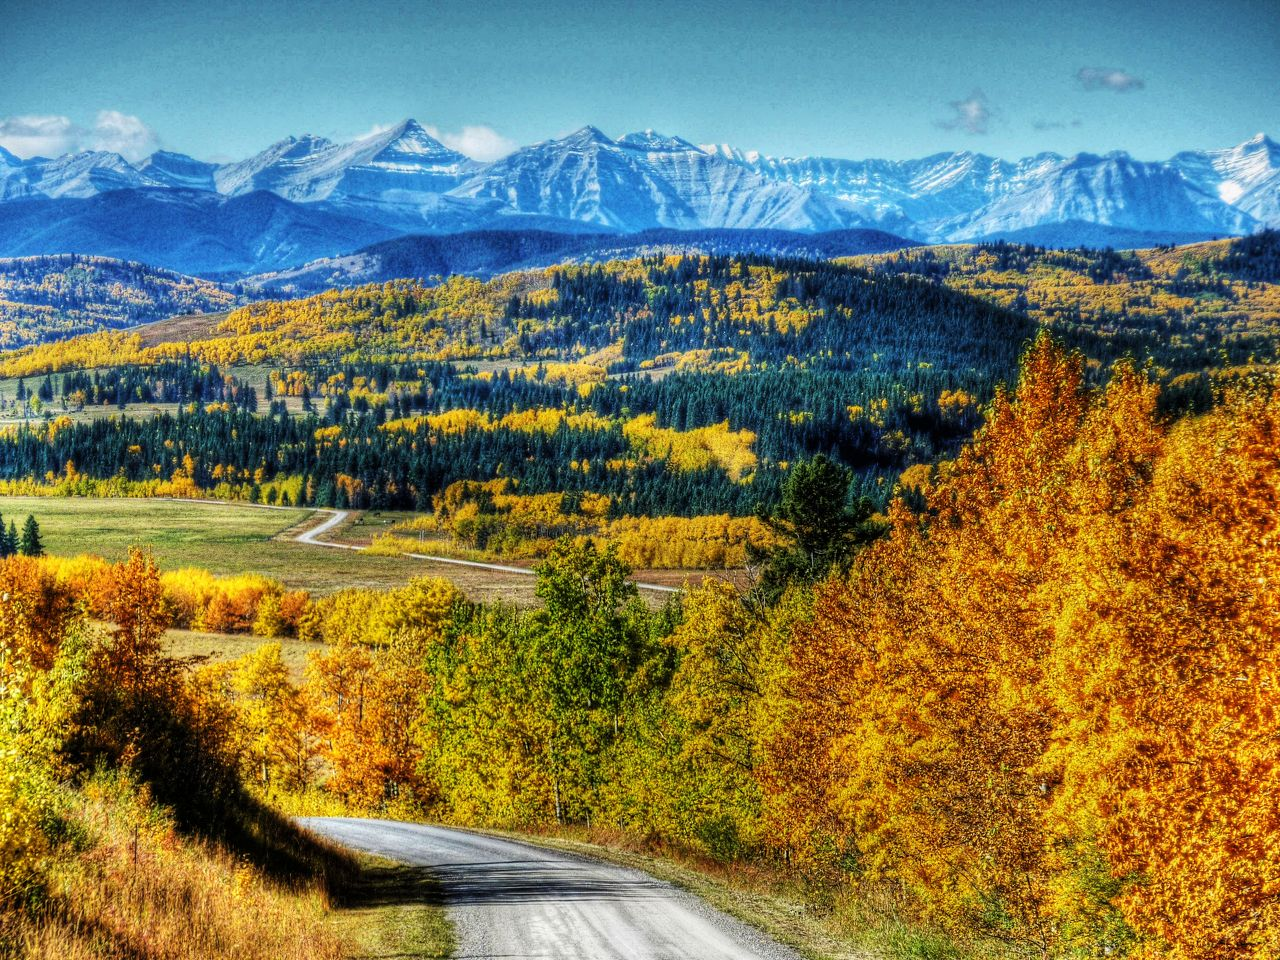 Fall in the West